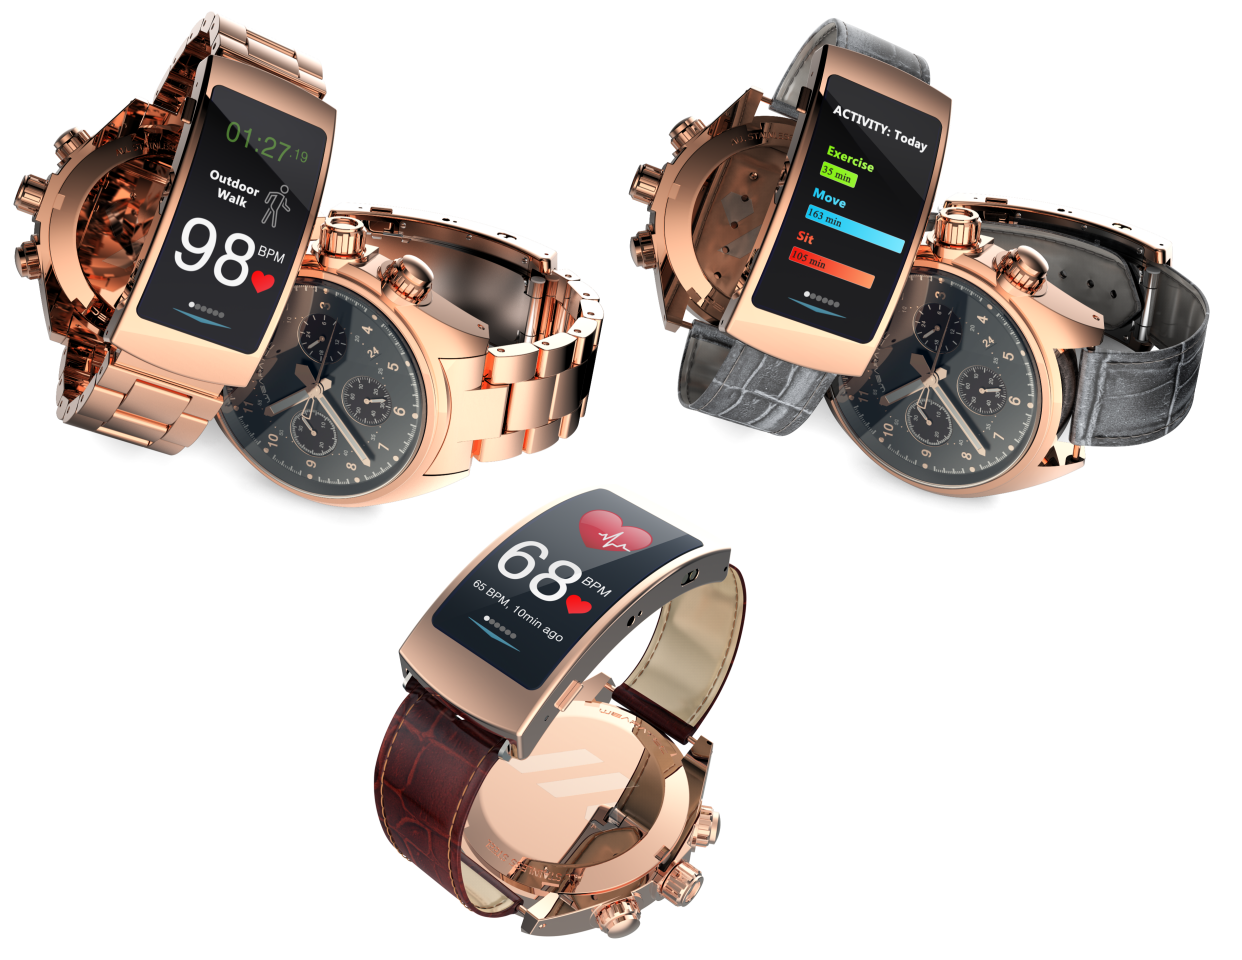 Innovation in Canada: The Canadian startup that wants to kill the Apple Watch